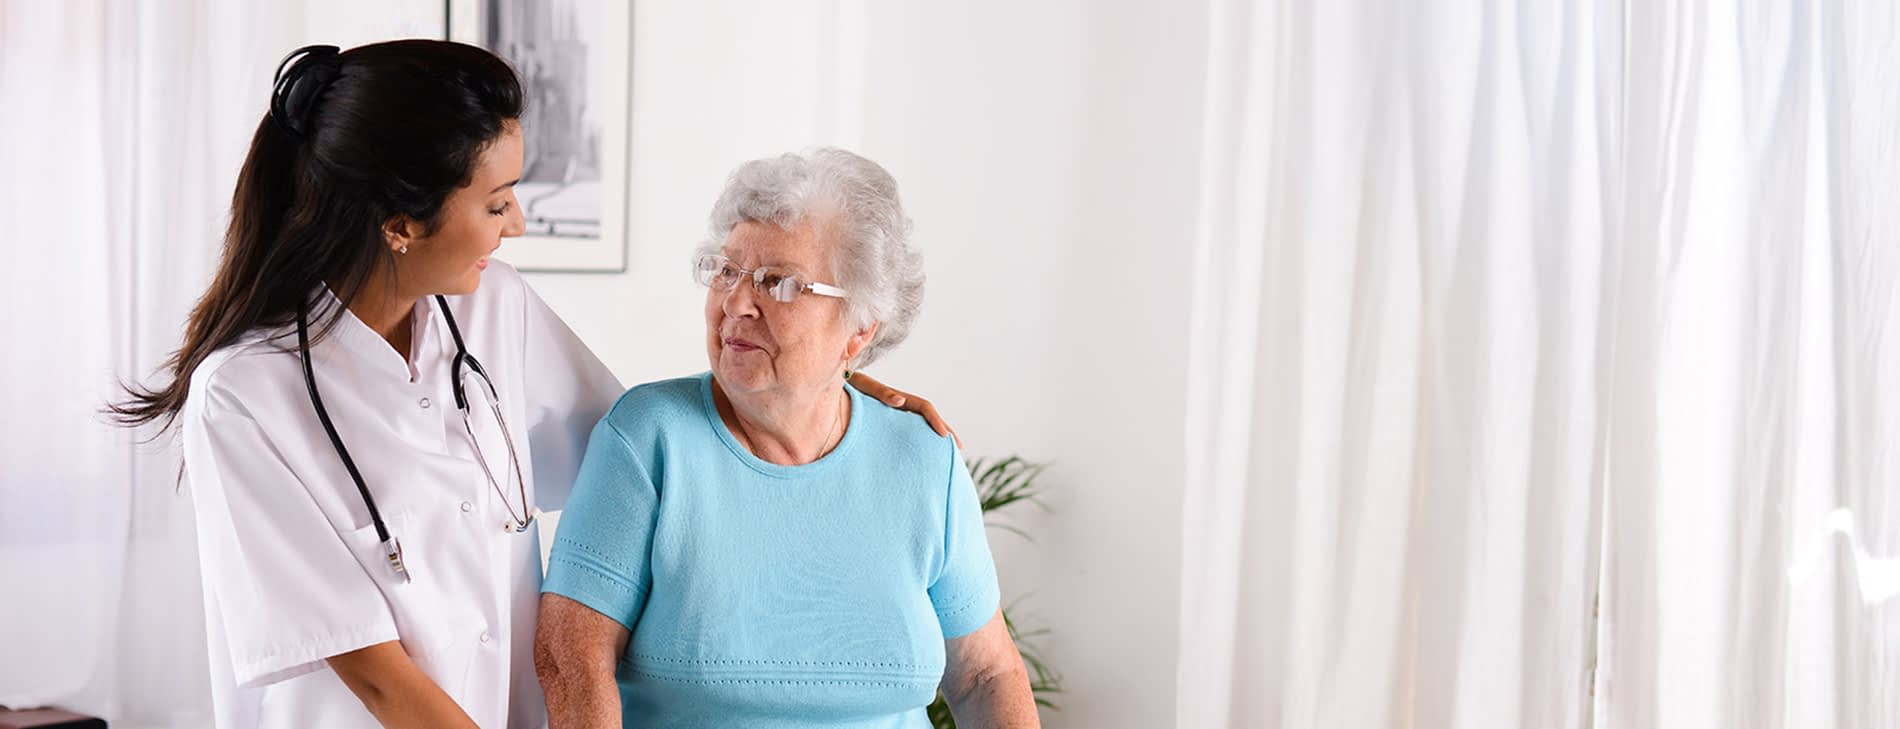 Read more about the article Companion Care Services Allows Seniors to Live Longer, With More Freedom